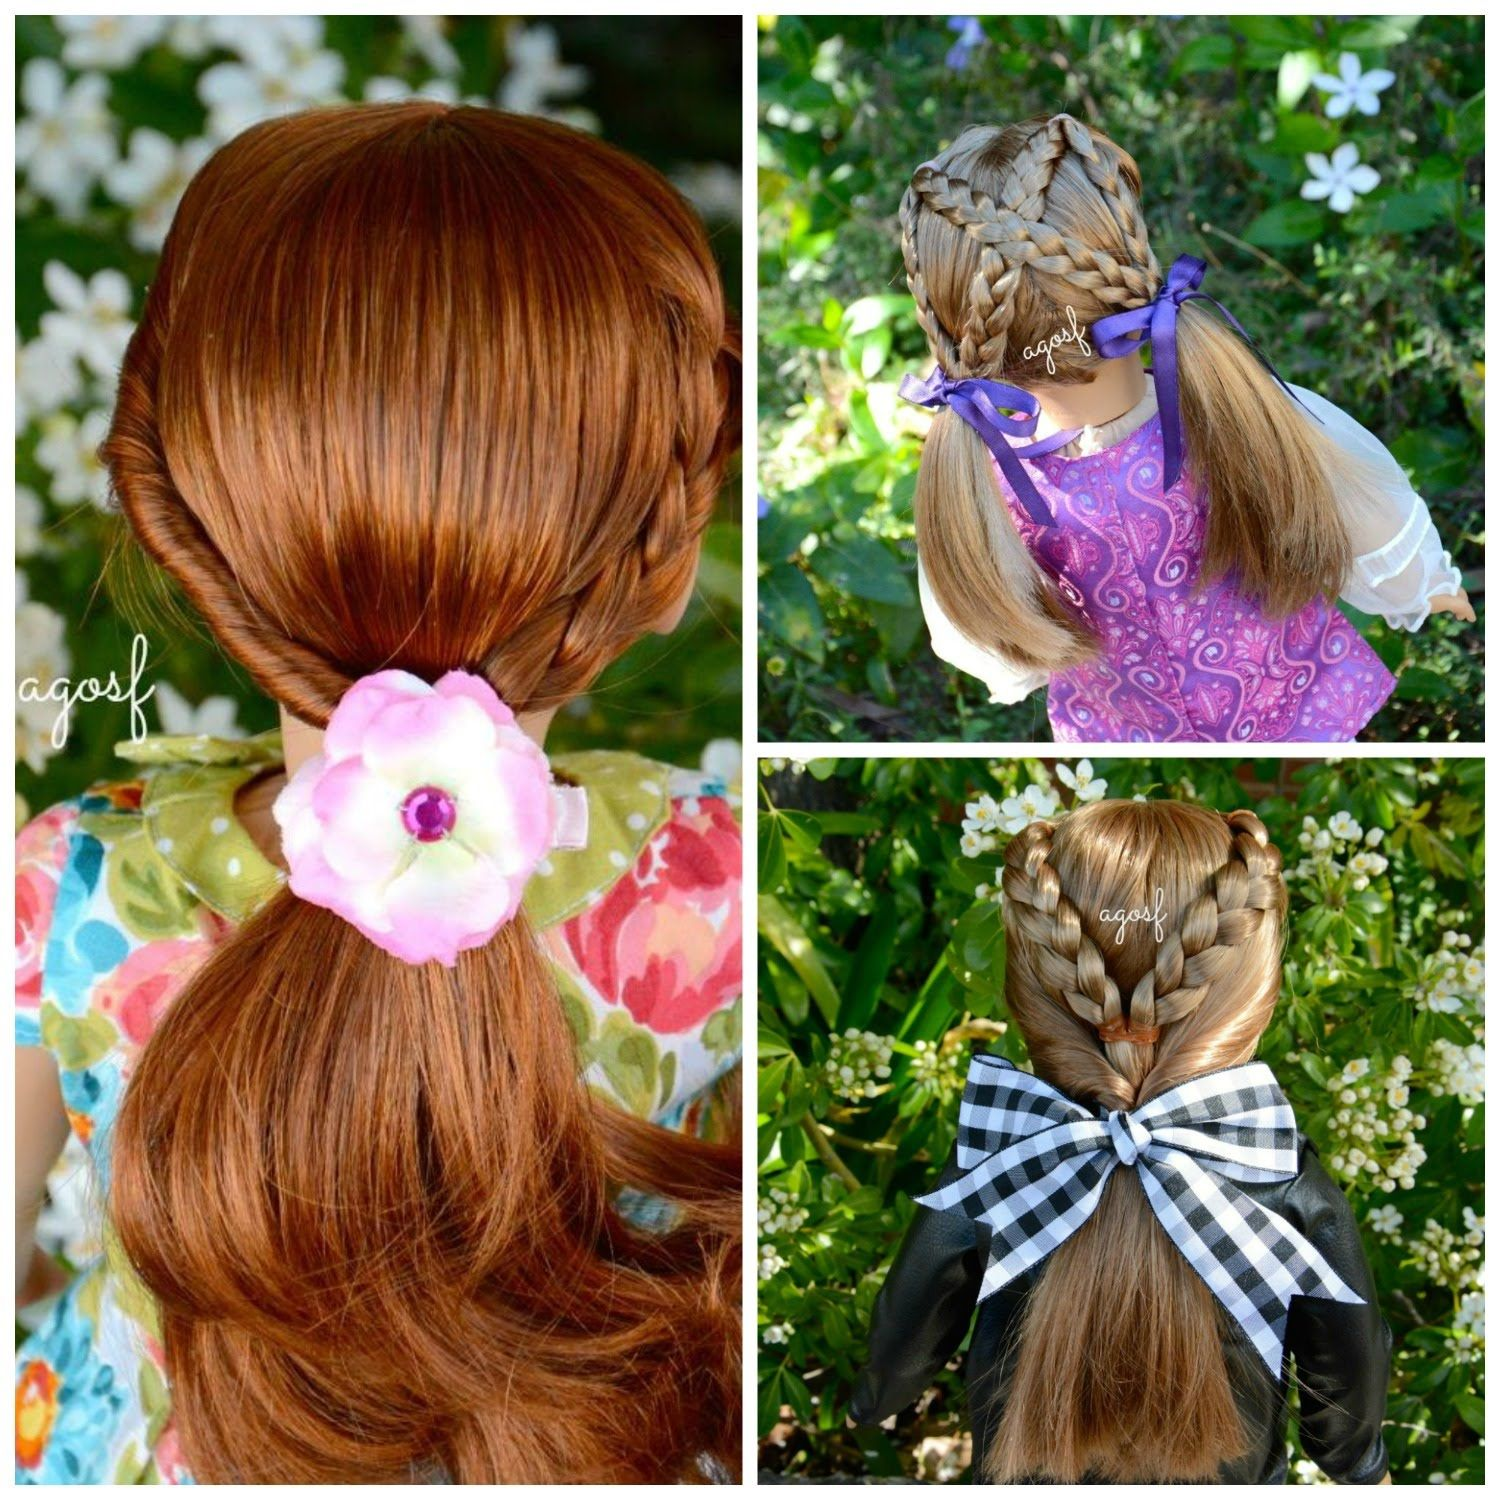 American Girl Doll Hair Salon Hairstyles By AGOverSeasFan